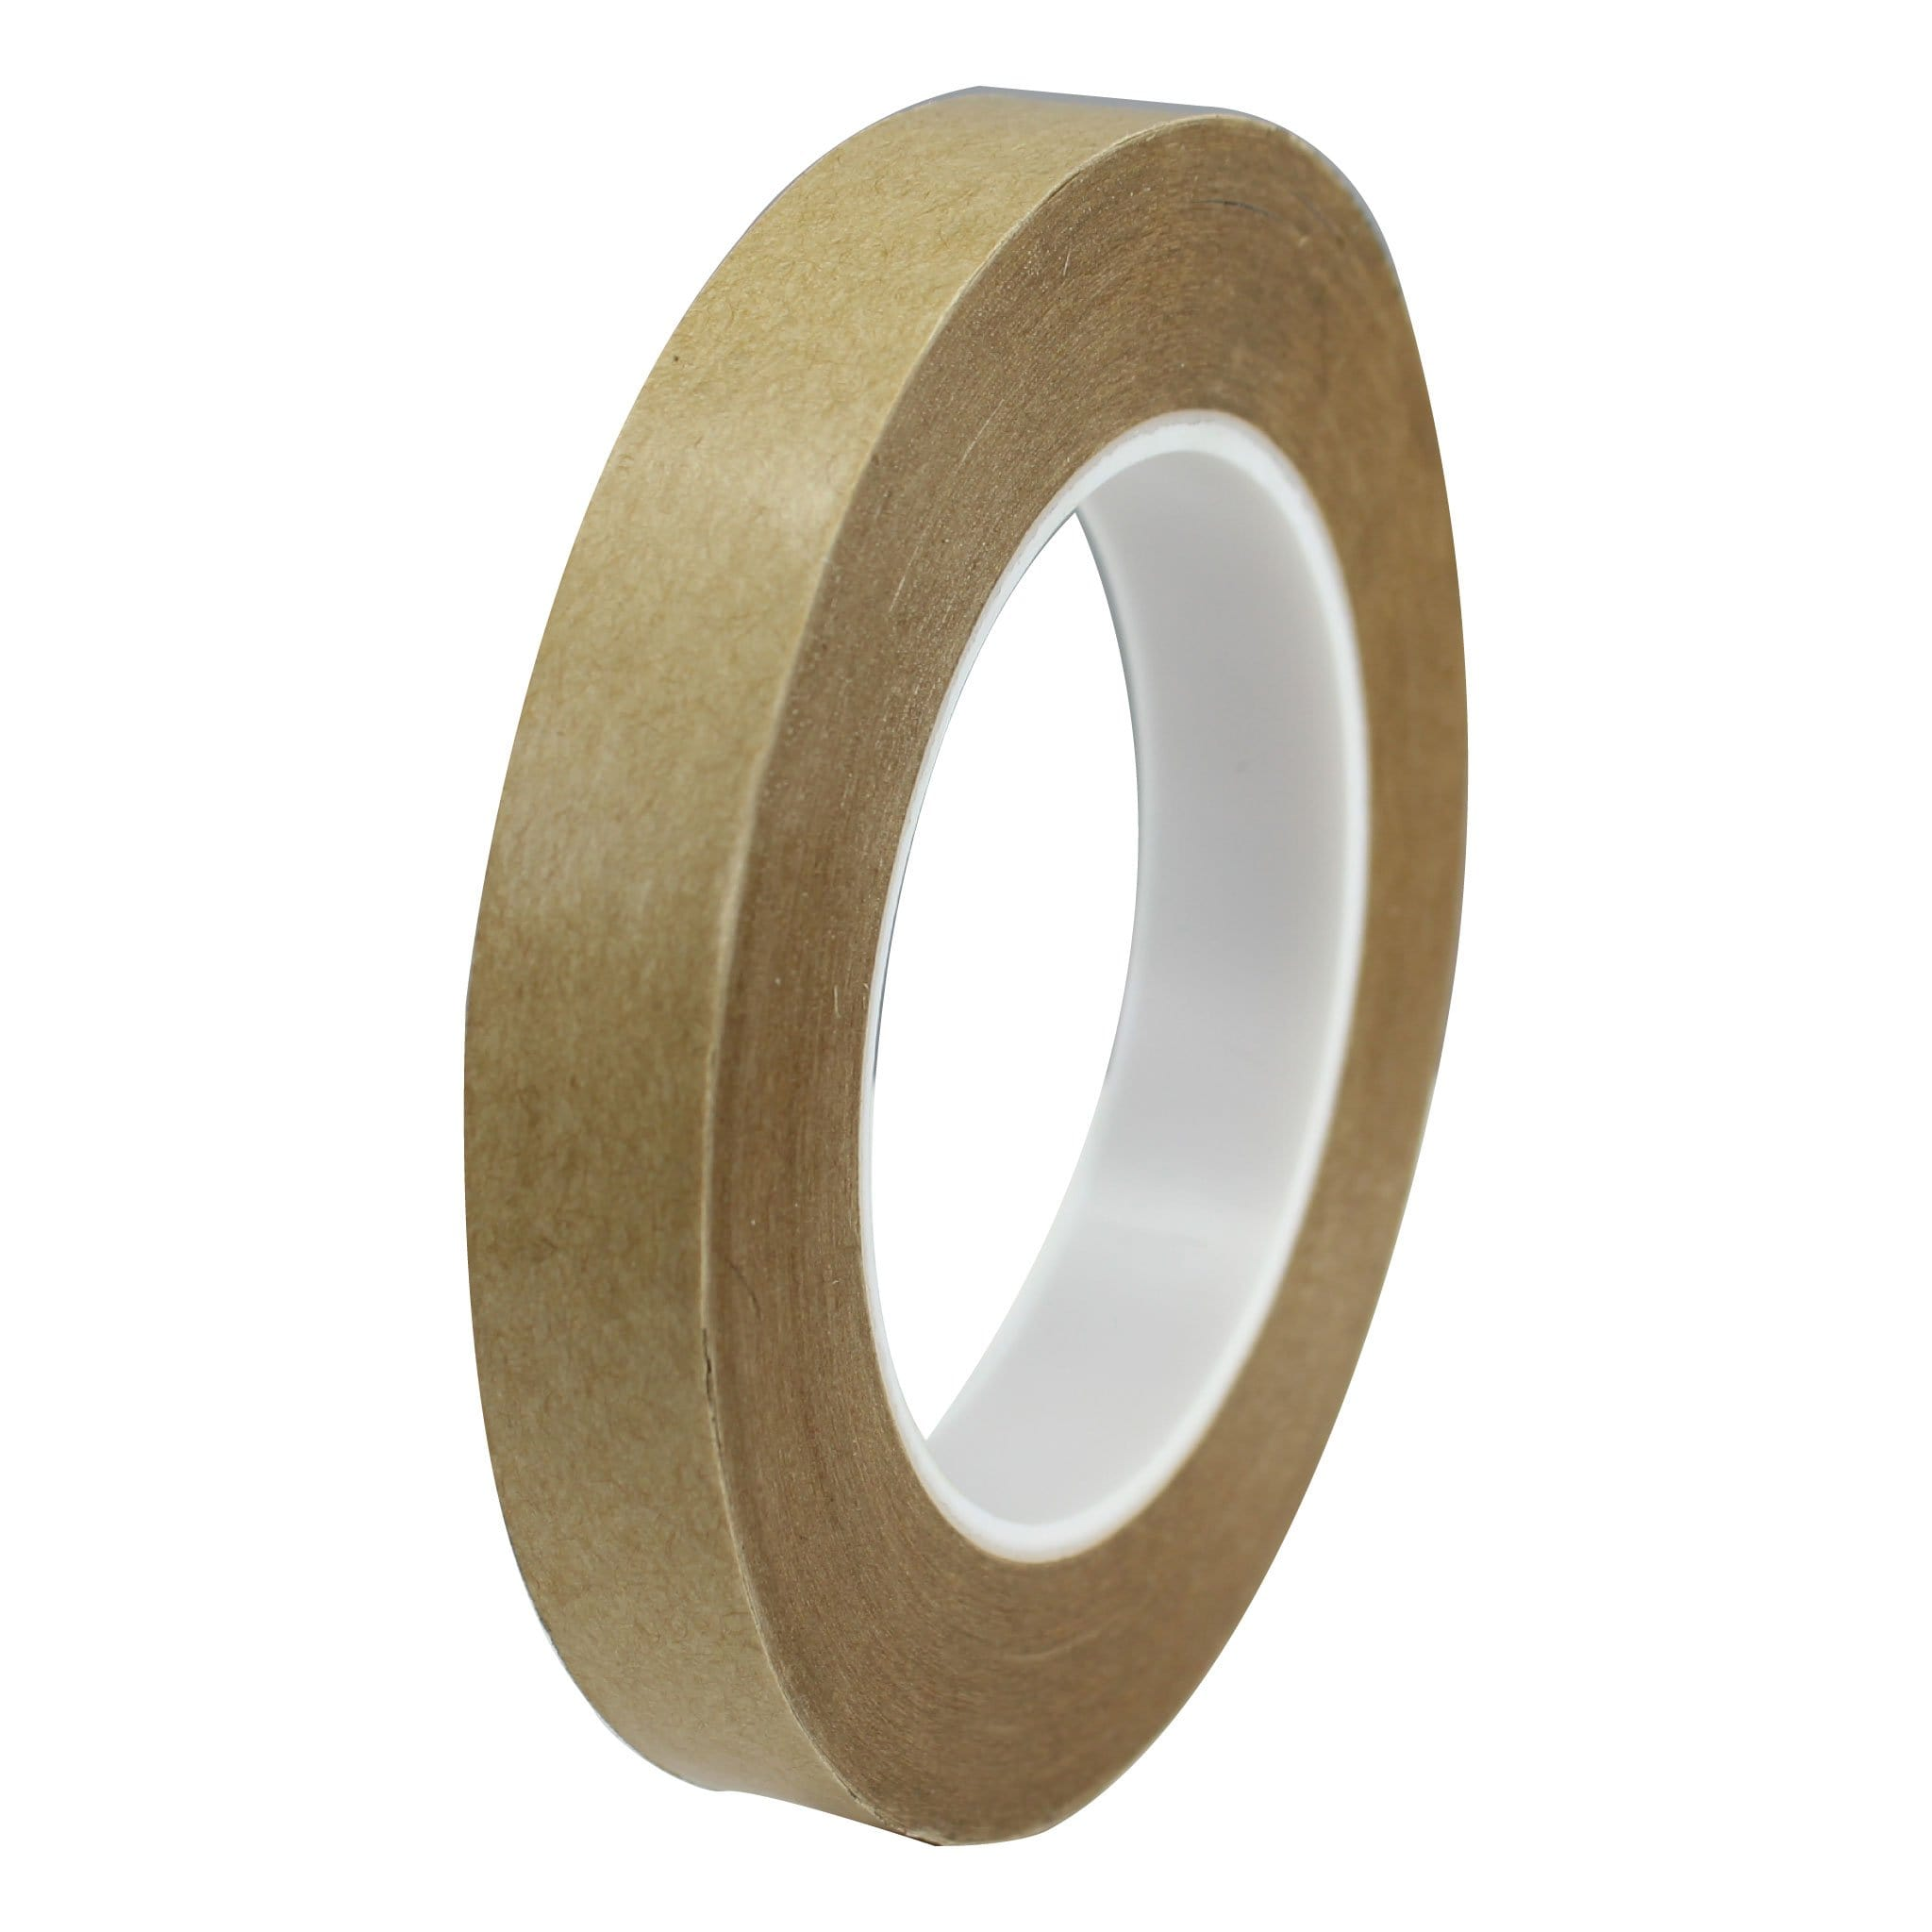 "Handheld ATG Tape | 1/4"" x 60yds 